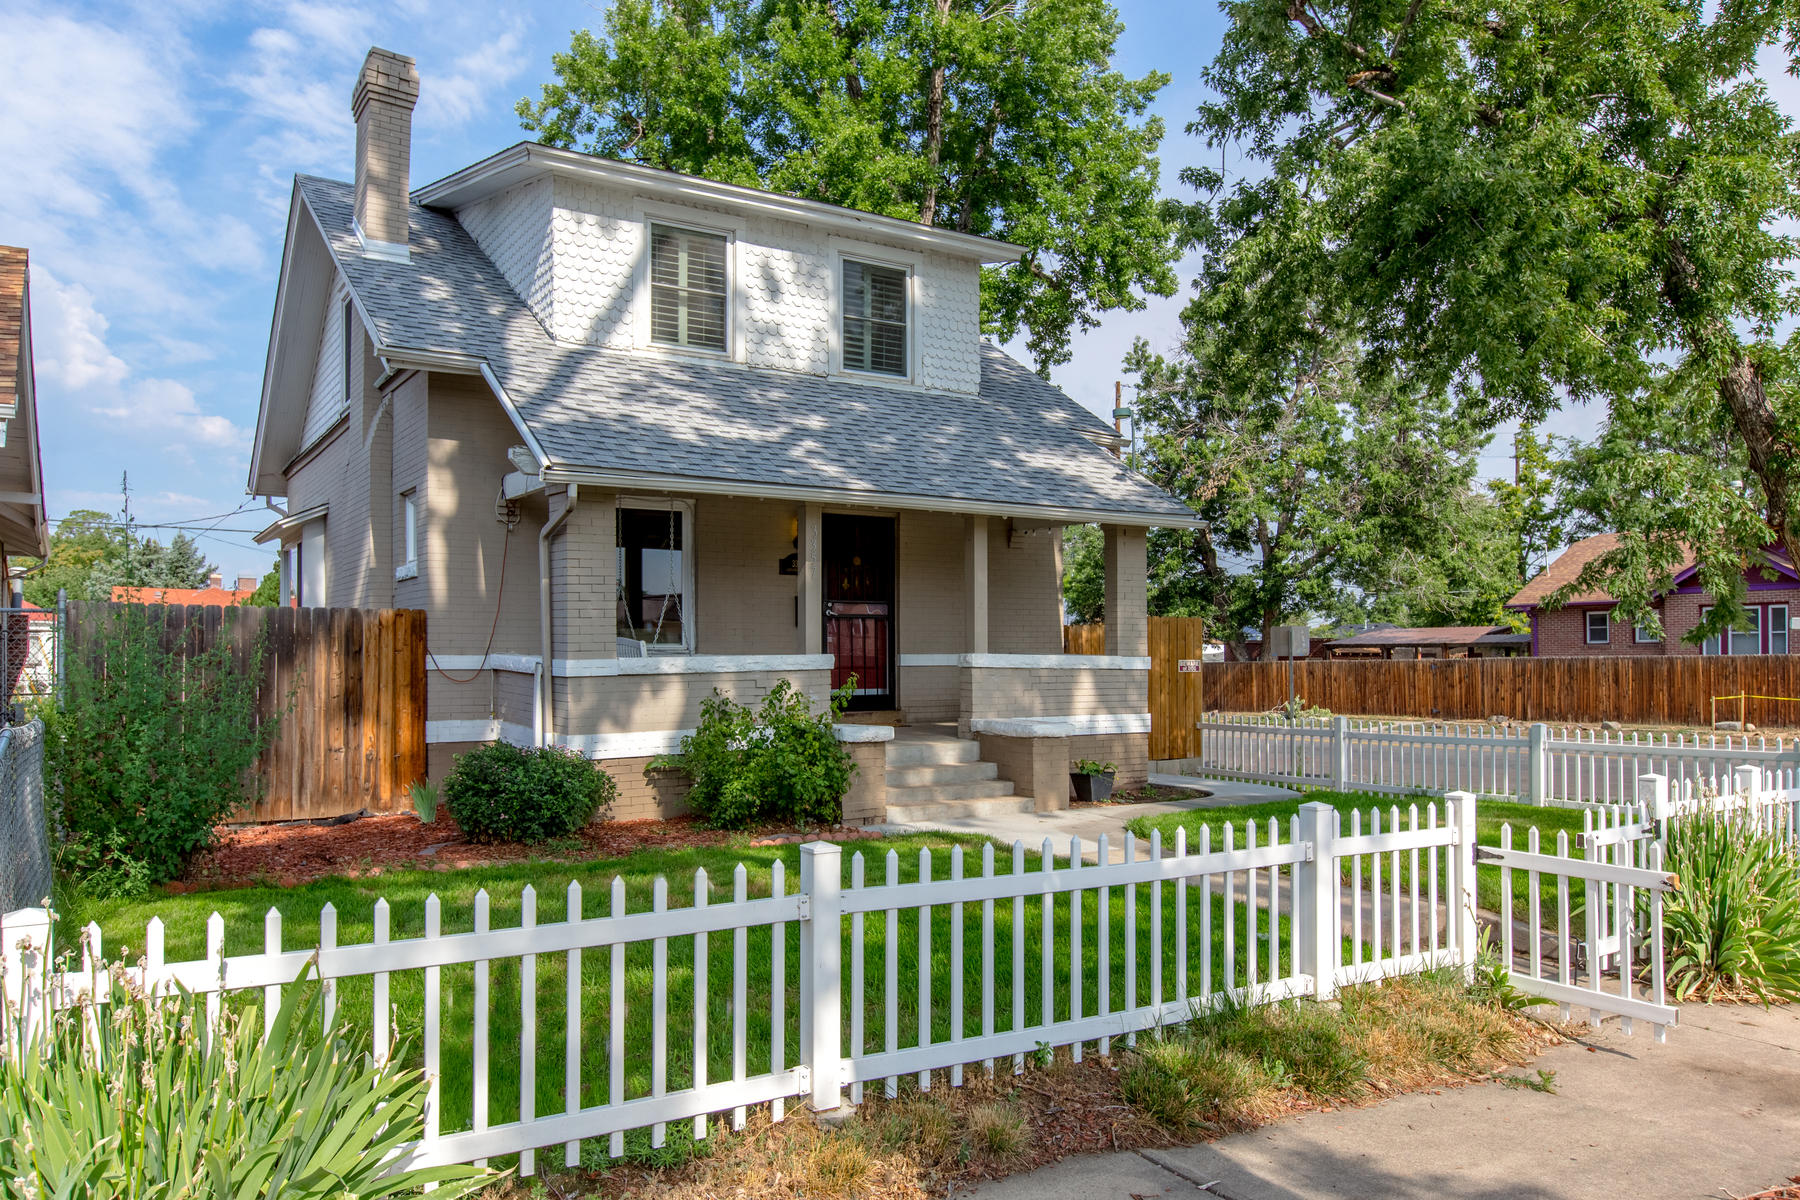 Single Family Home for Active at Vintage Charm, Modern Updates in Smoking Hot, Vibrant Cole 3357 N. Gaylord St. Denver, Colorado 80205 United States